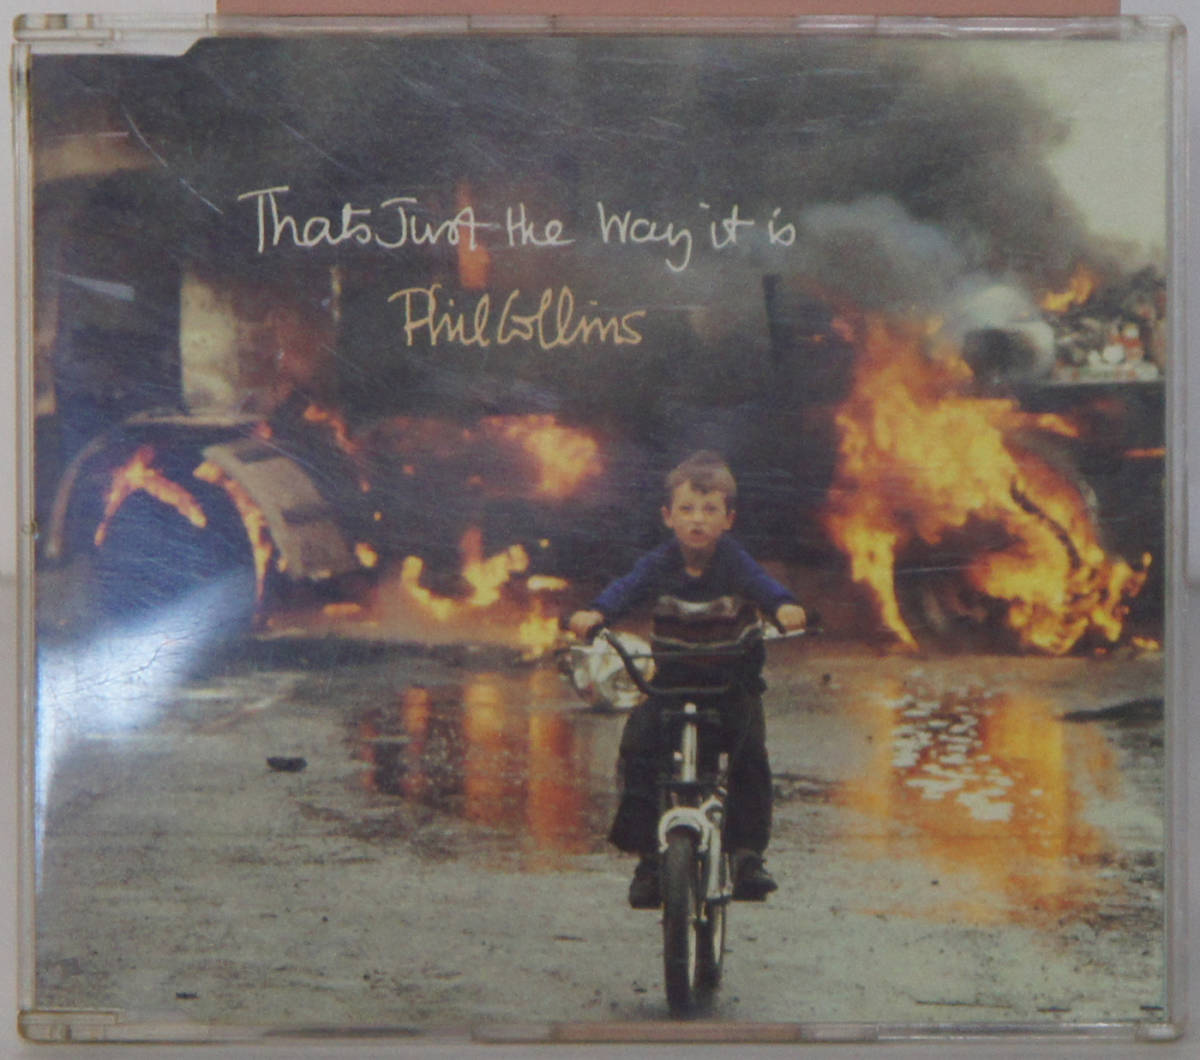 CD ● PHIL COLLINS / THAT'S JUST THE WAY IT IS ● 9031 71945-2 フィル・コリンズ 輸入盤 B963_画像1